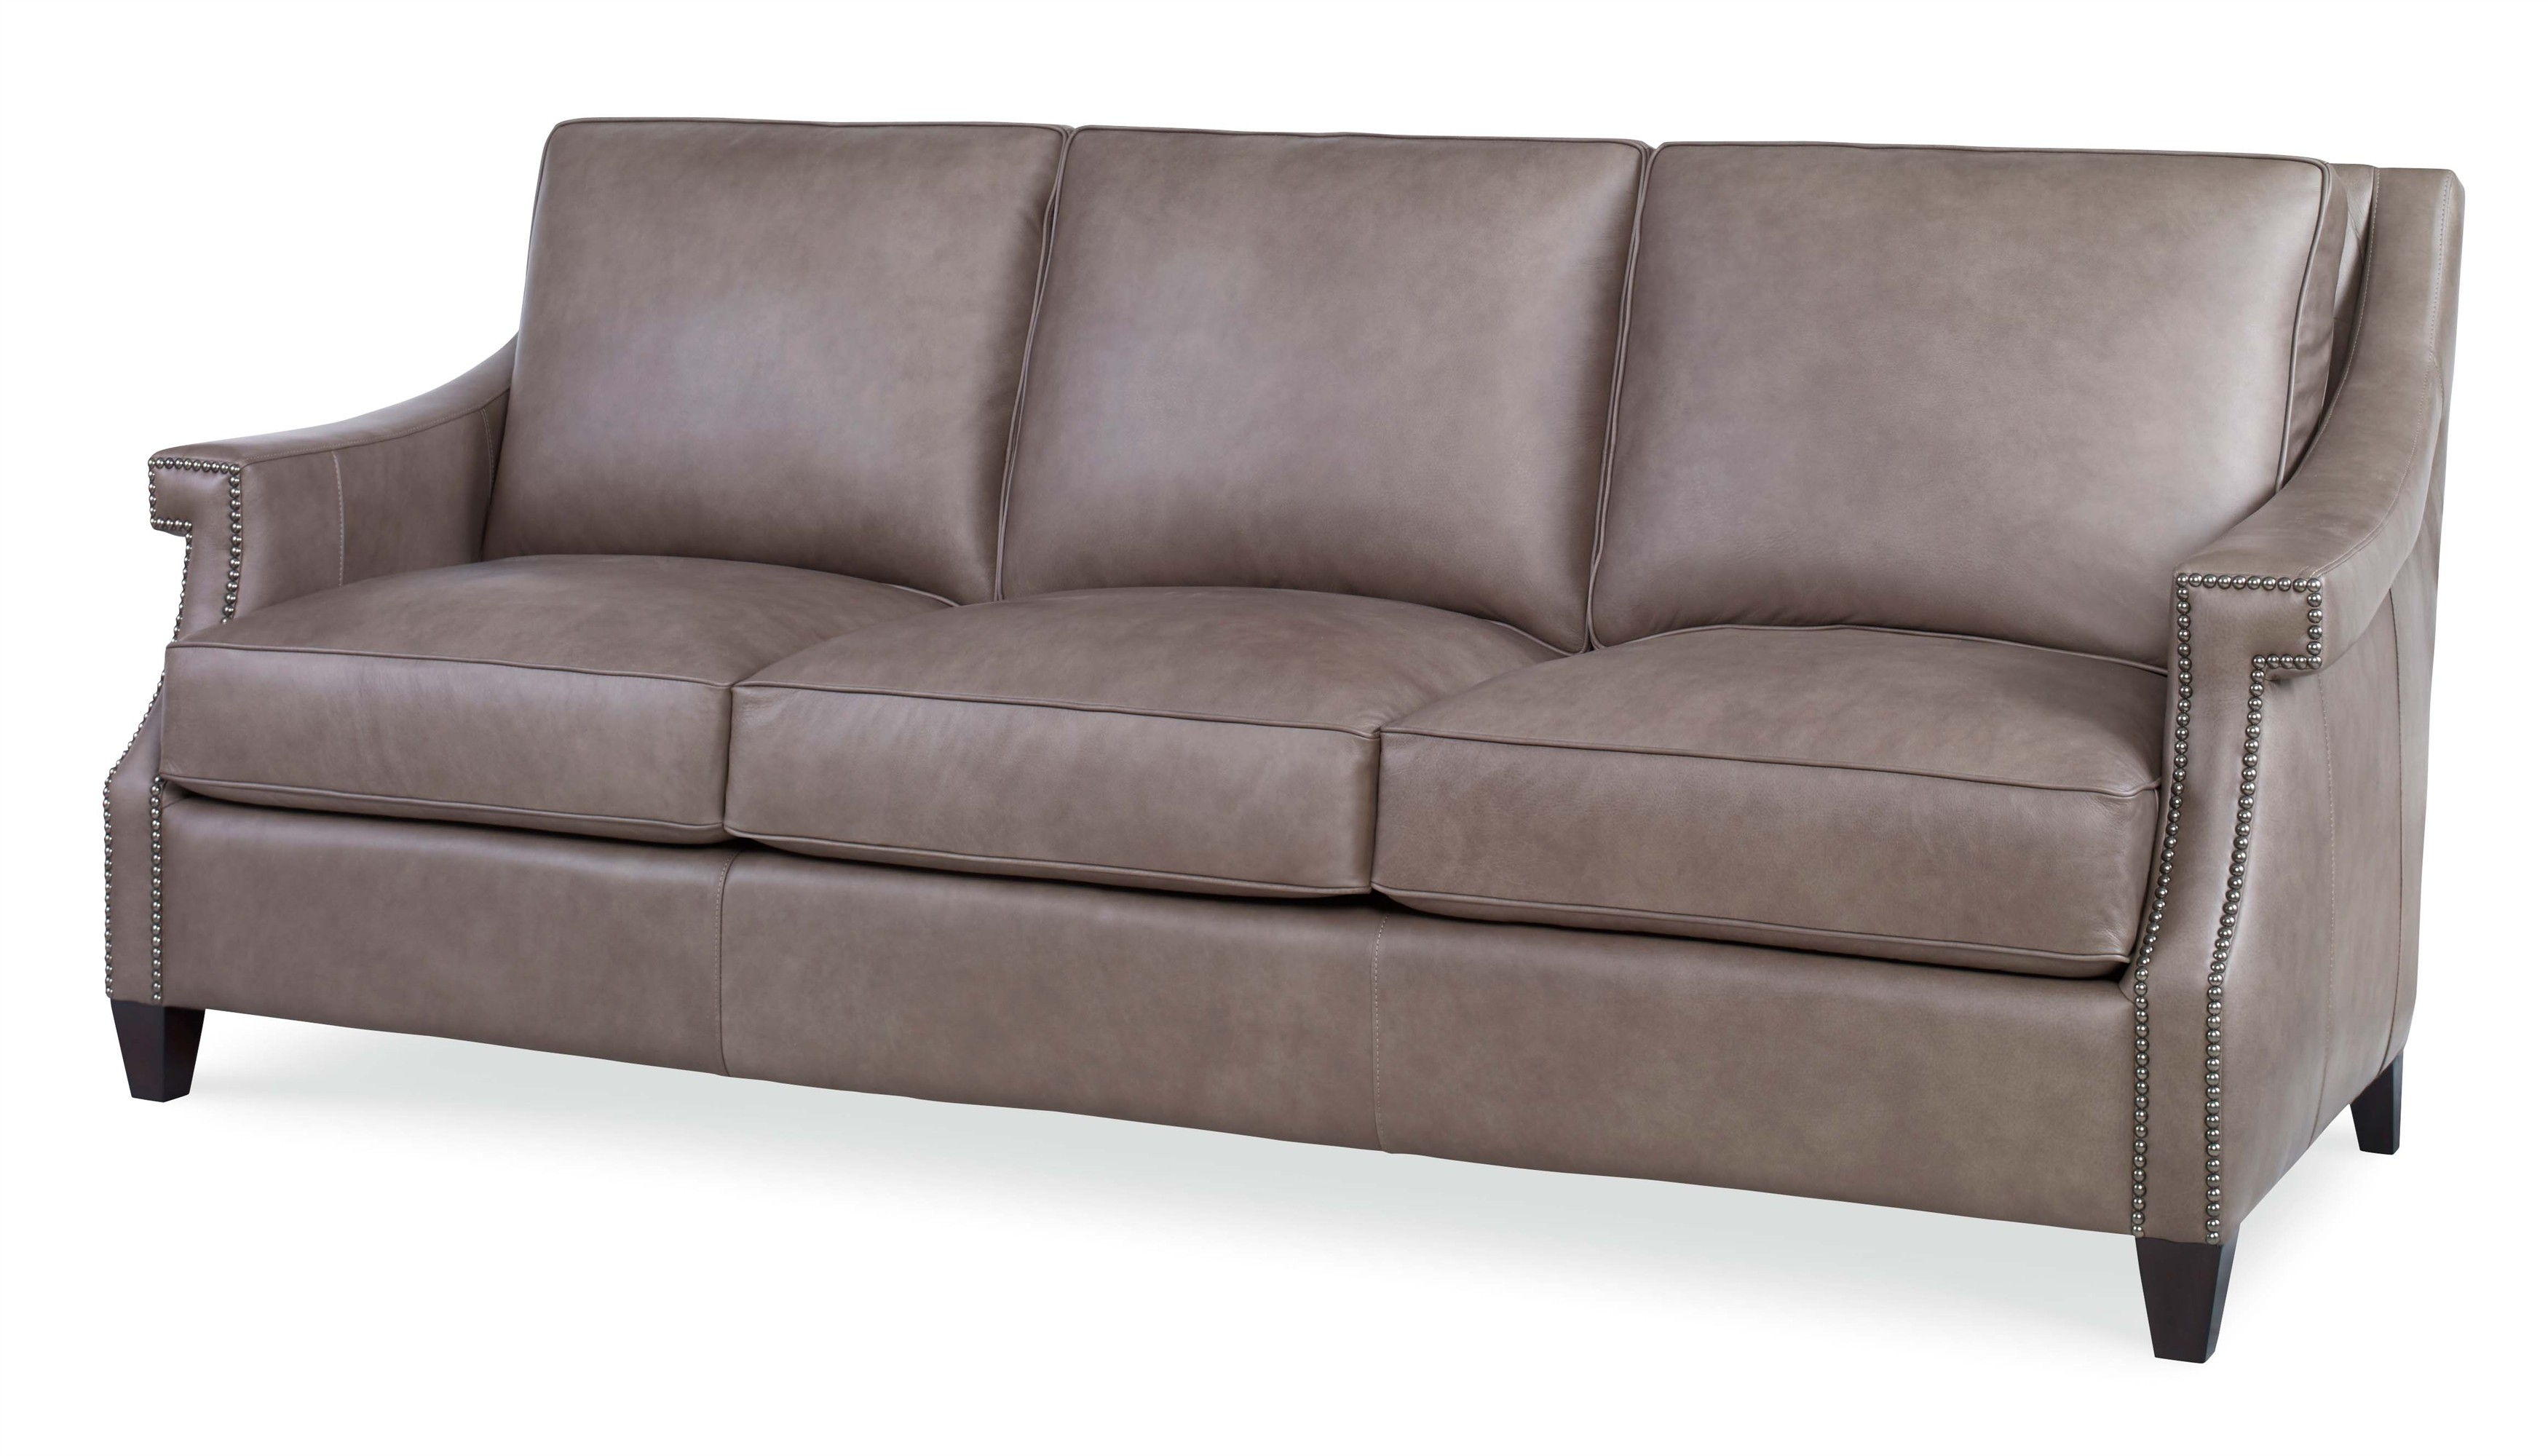 transitional style sectional sofas replacement sofa bed mattress full leather 3